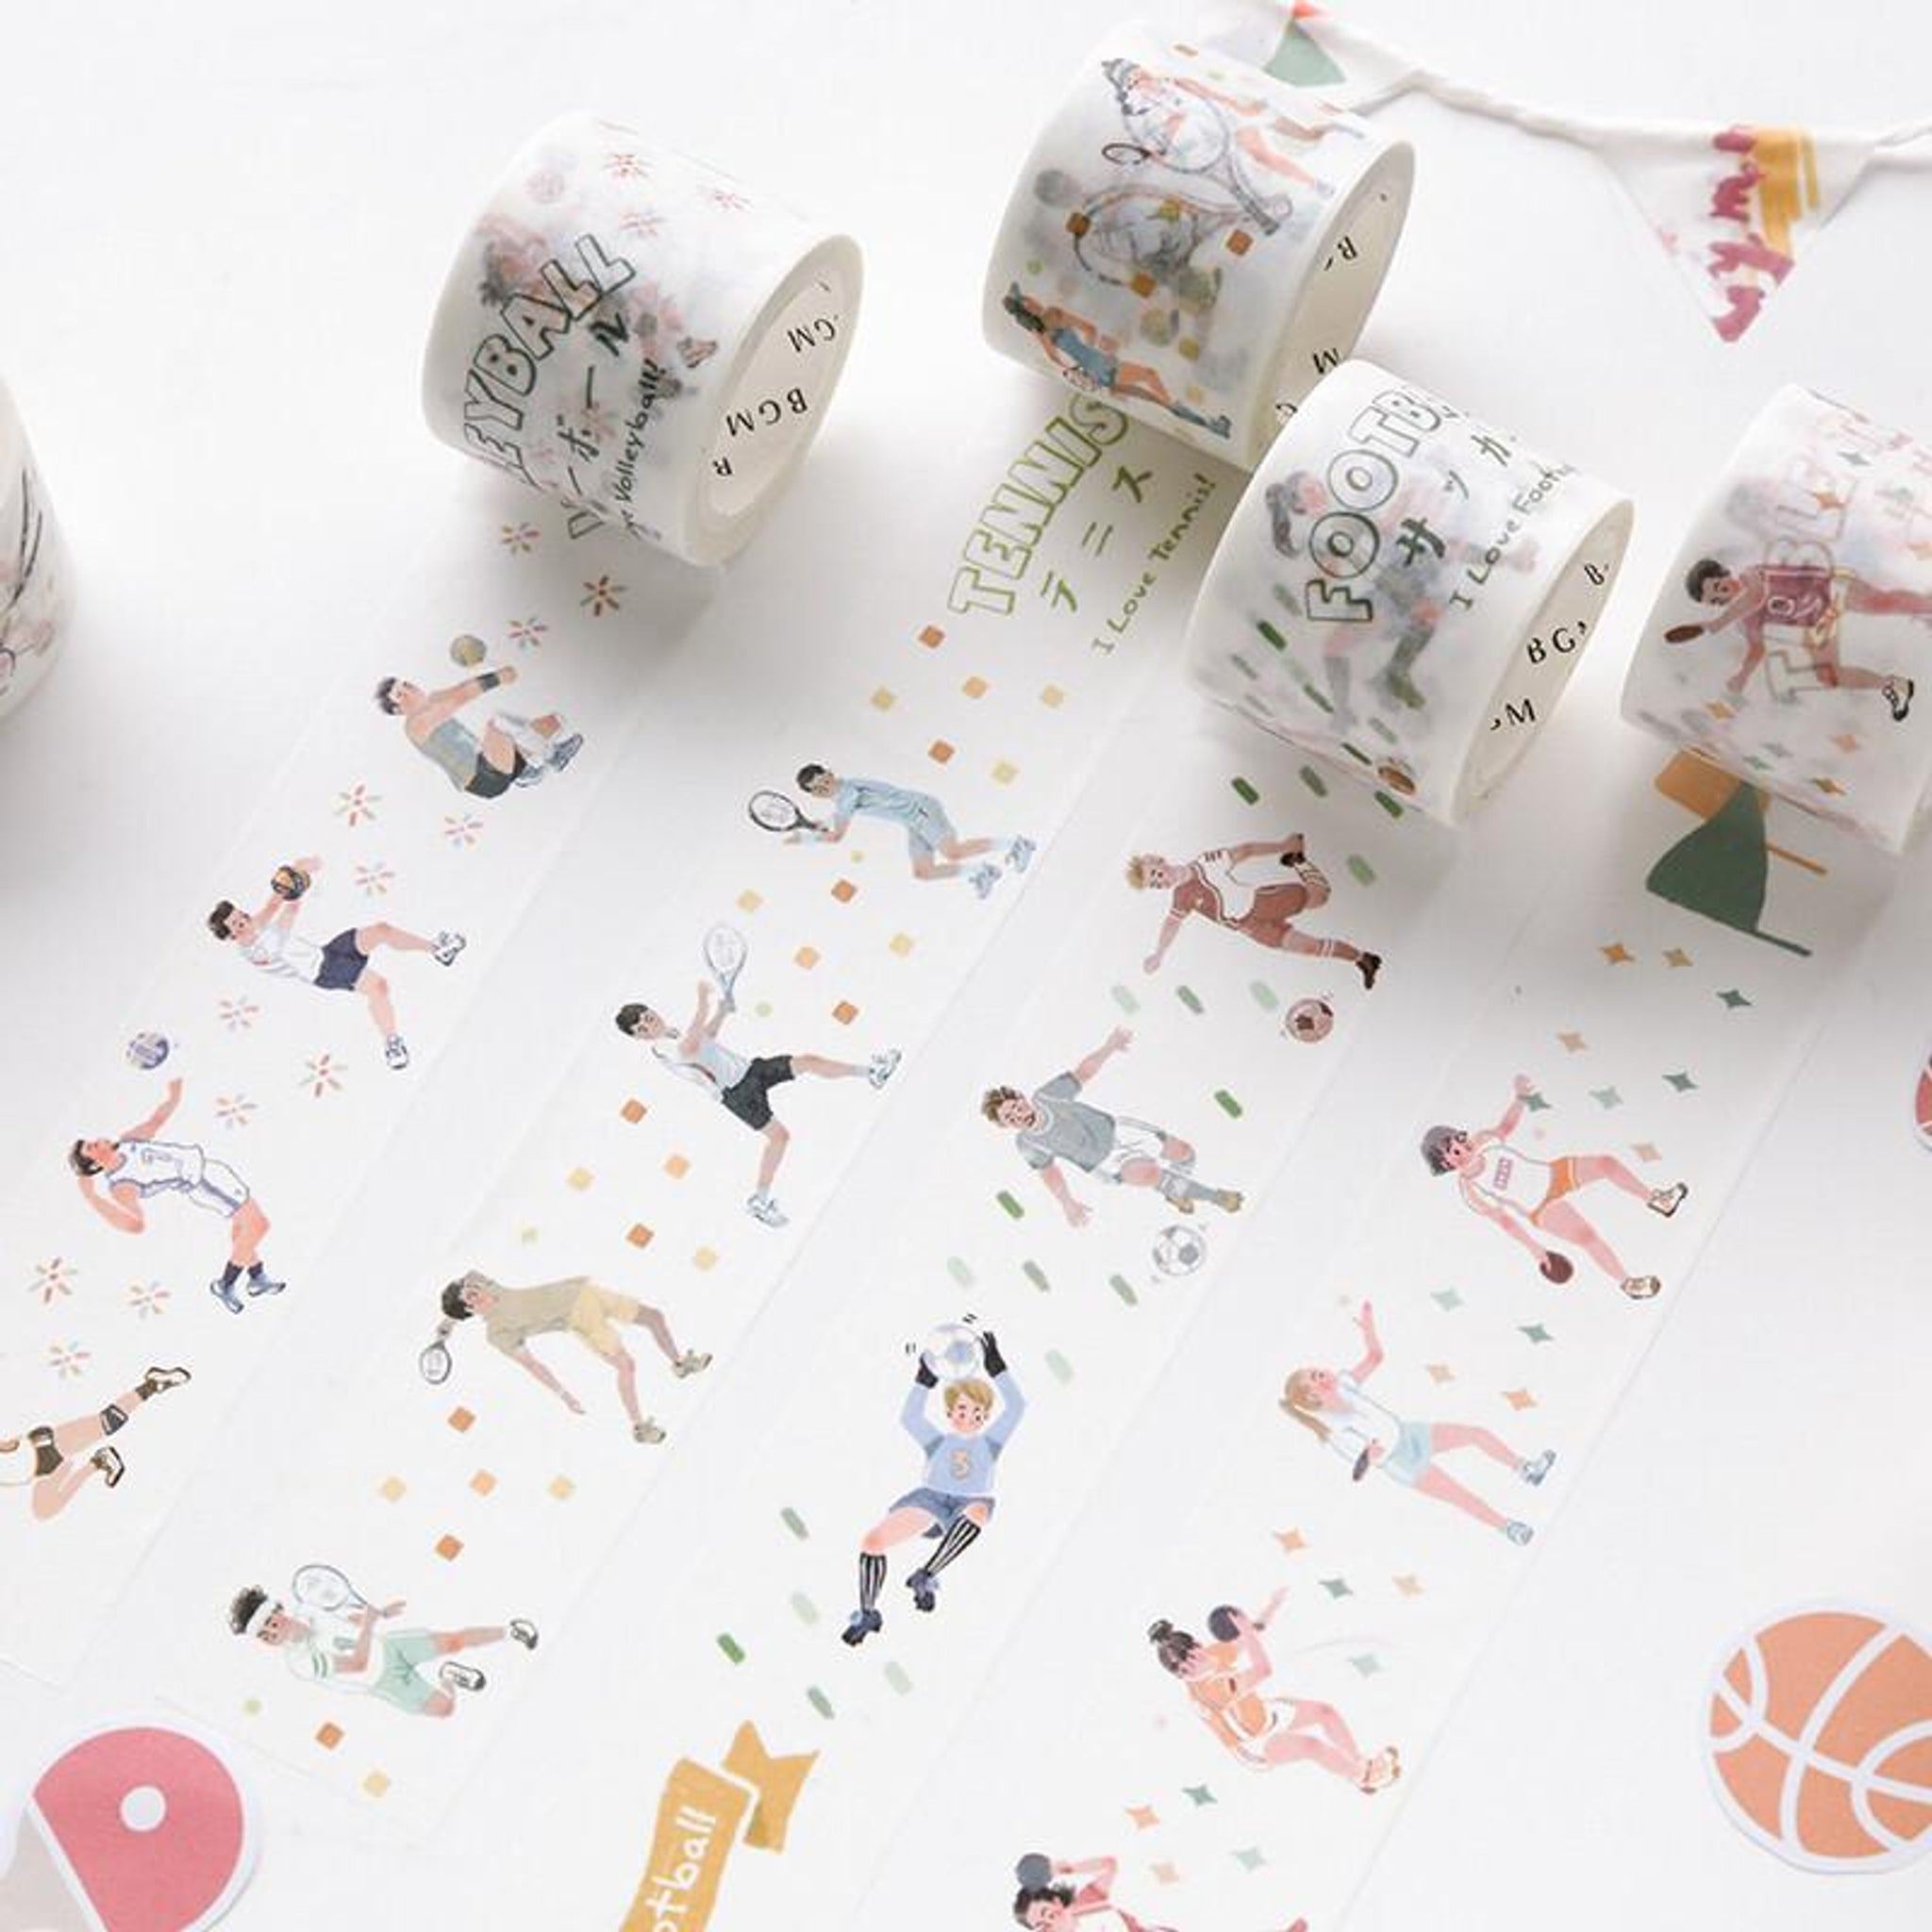 BGM Badminton Washi Tape